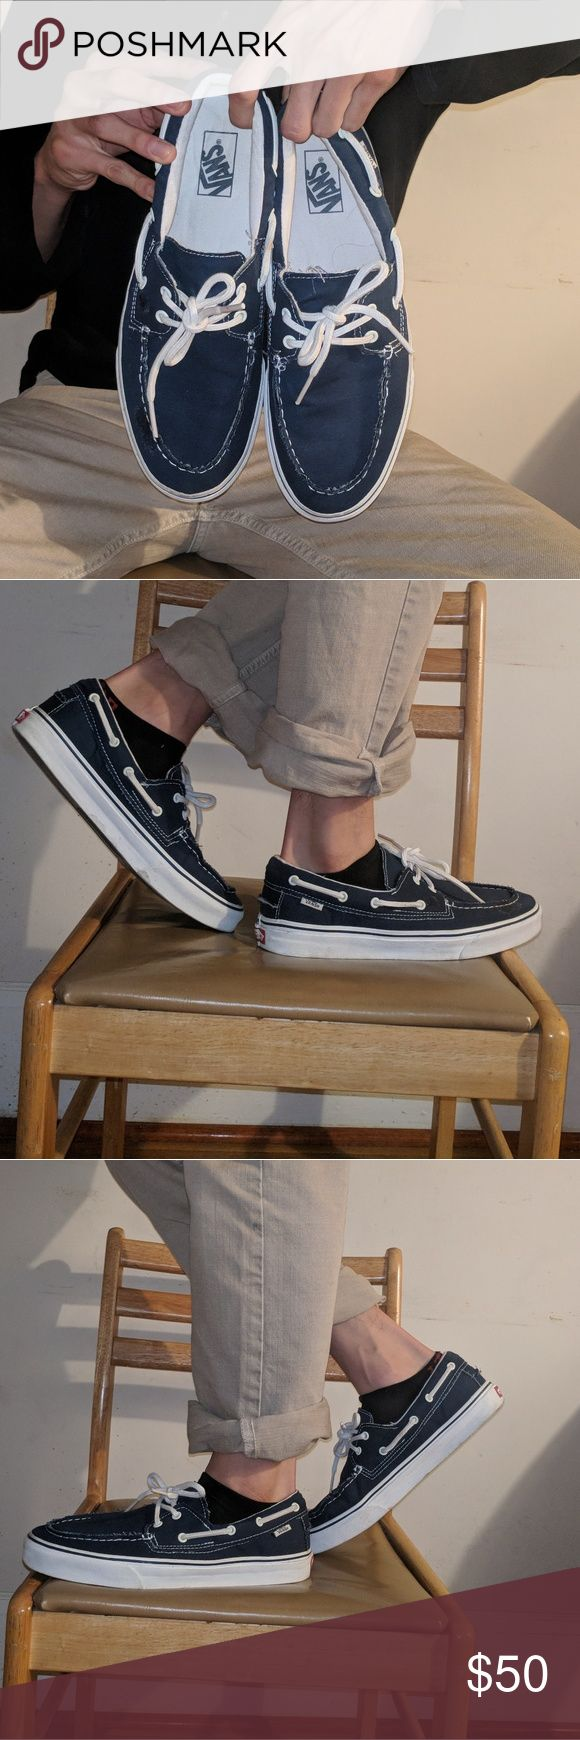 Navy Blue/ White Vans Boat Shoes These Boat Shoes have only been worn twice. Practically brand new. Still awesome. Vans Shoes Boat Shoes